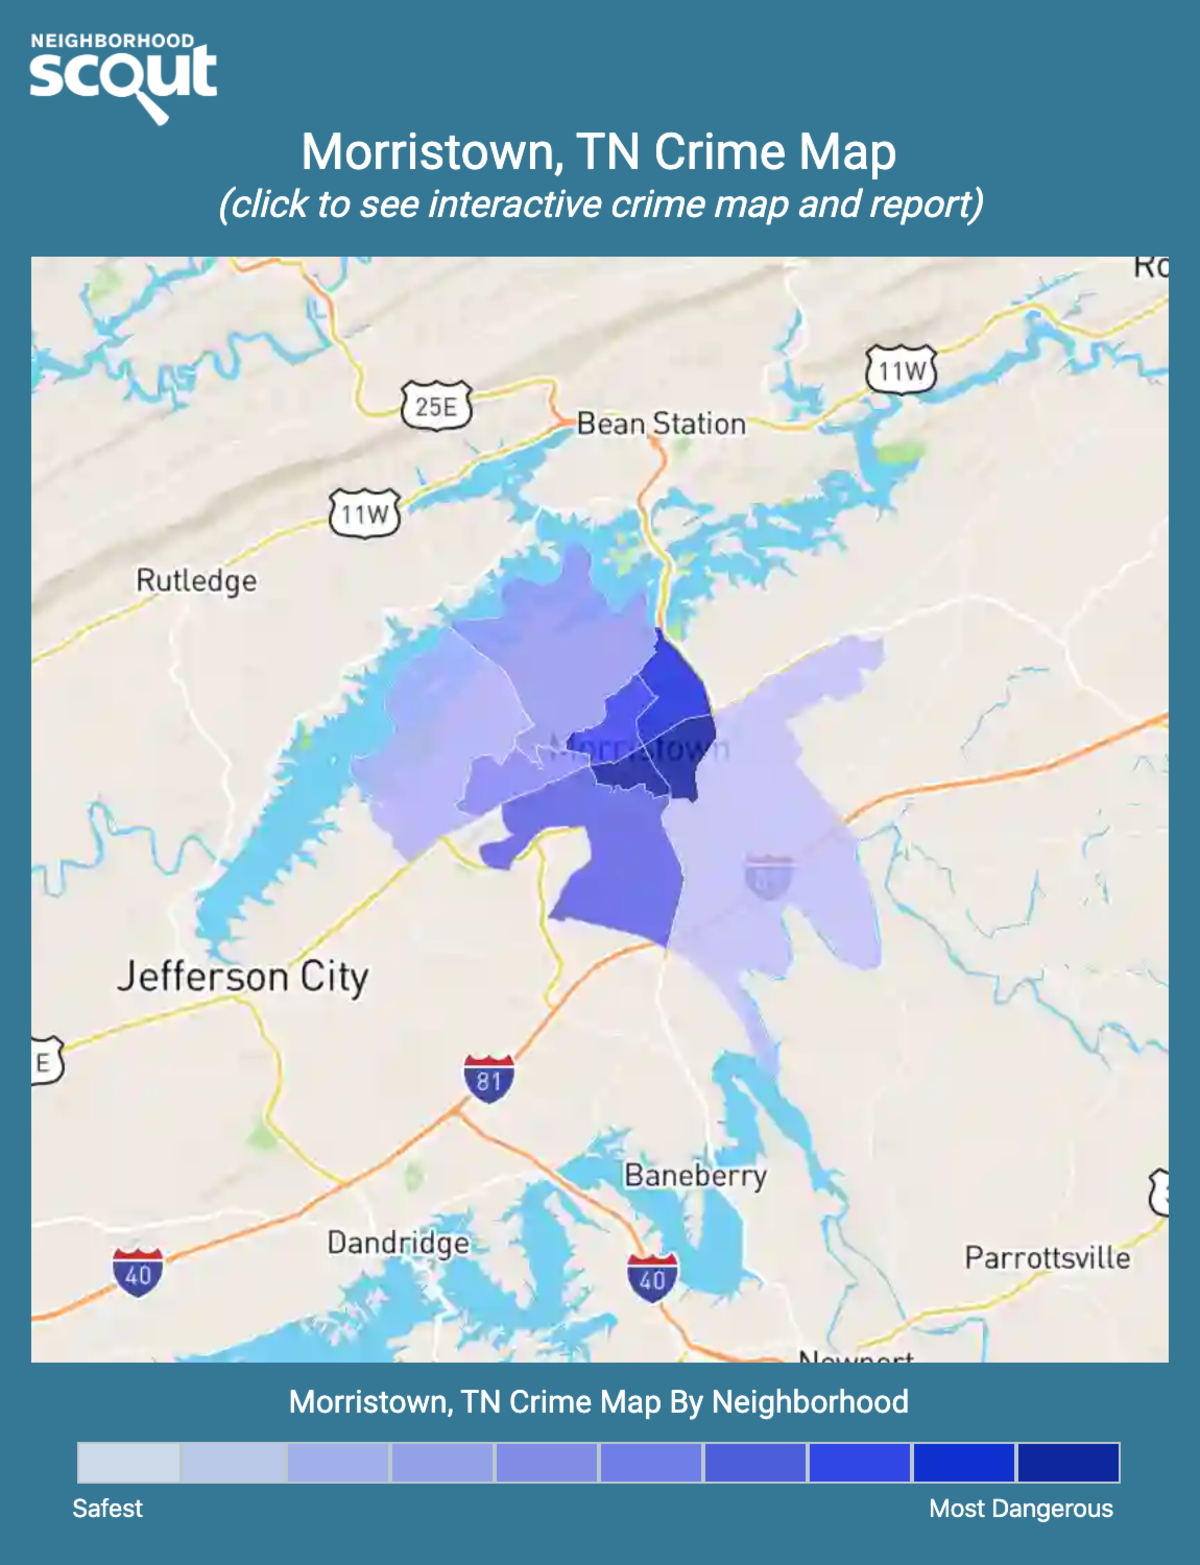 Morristown, Tennessee crime map